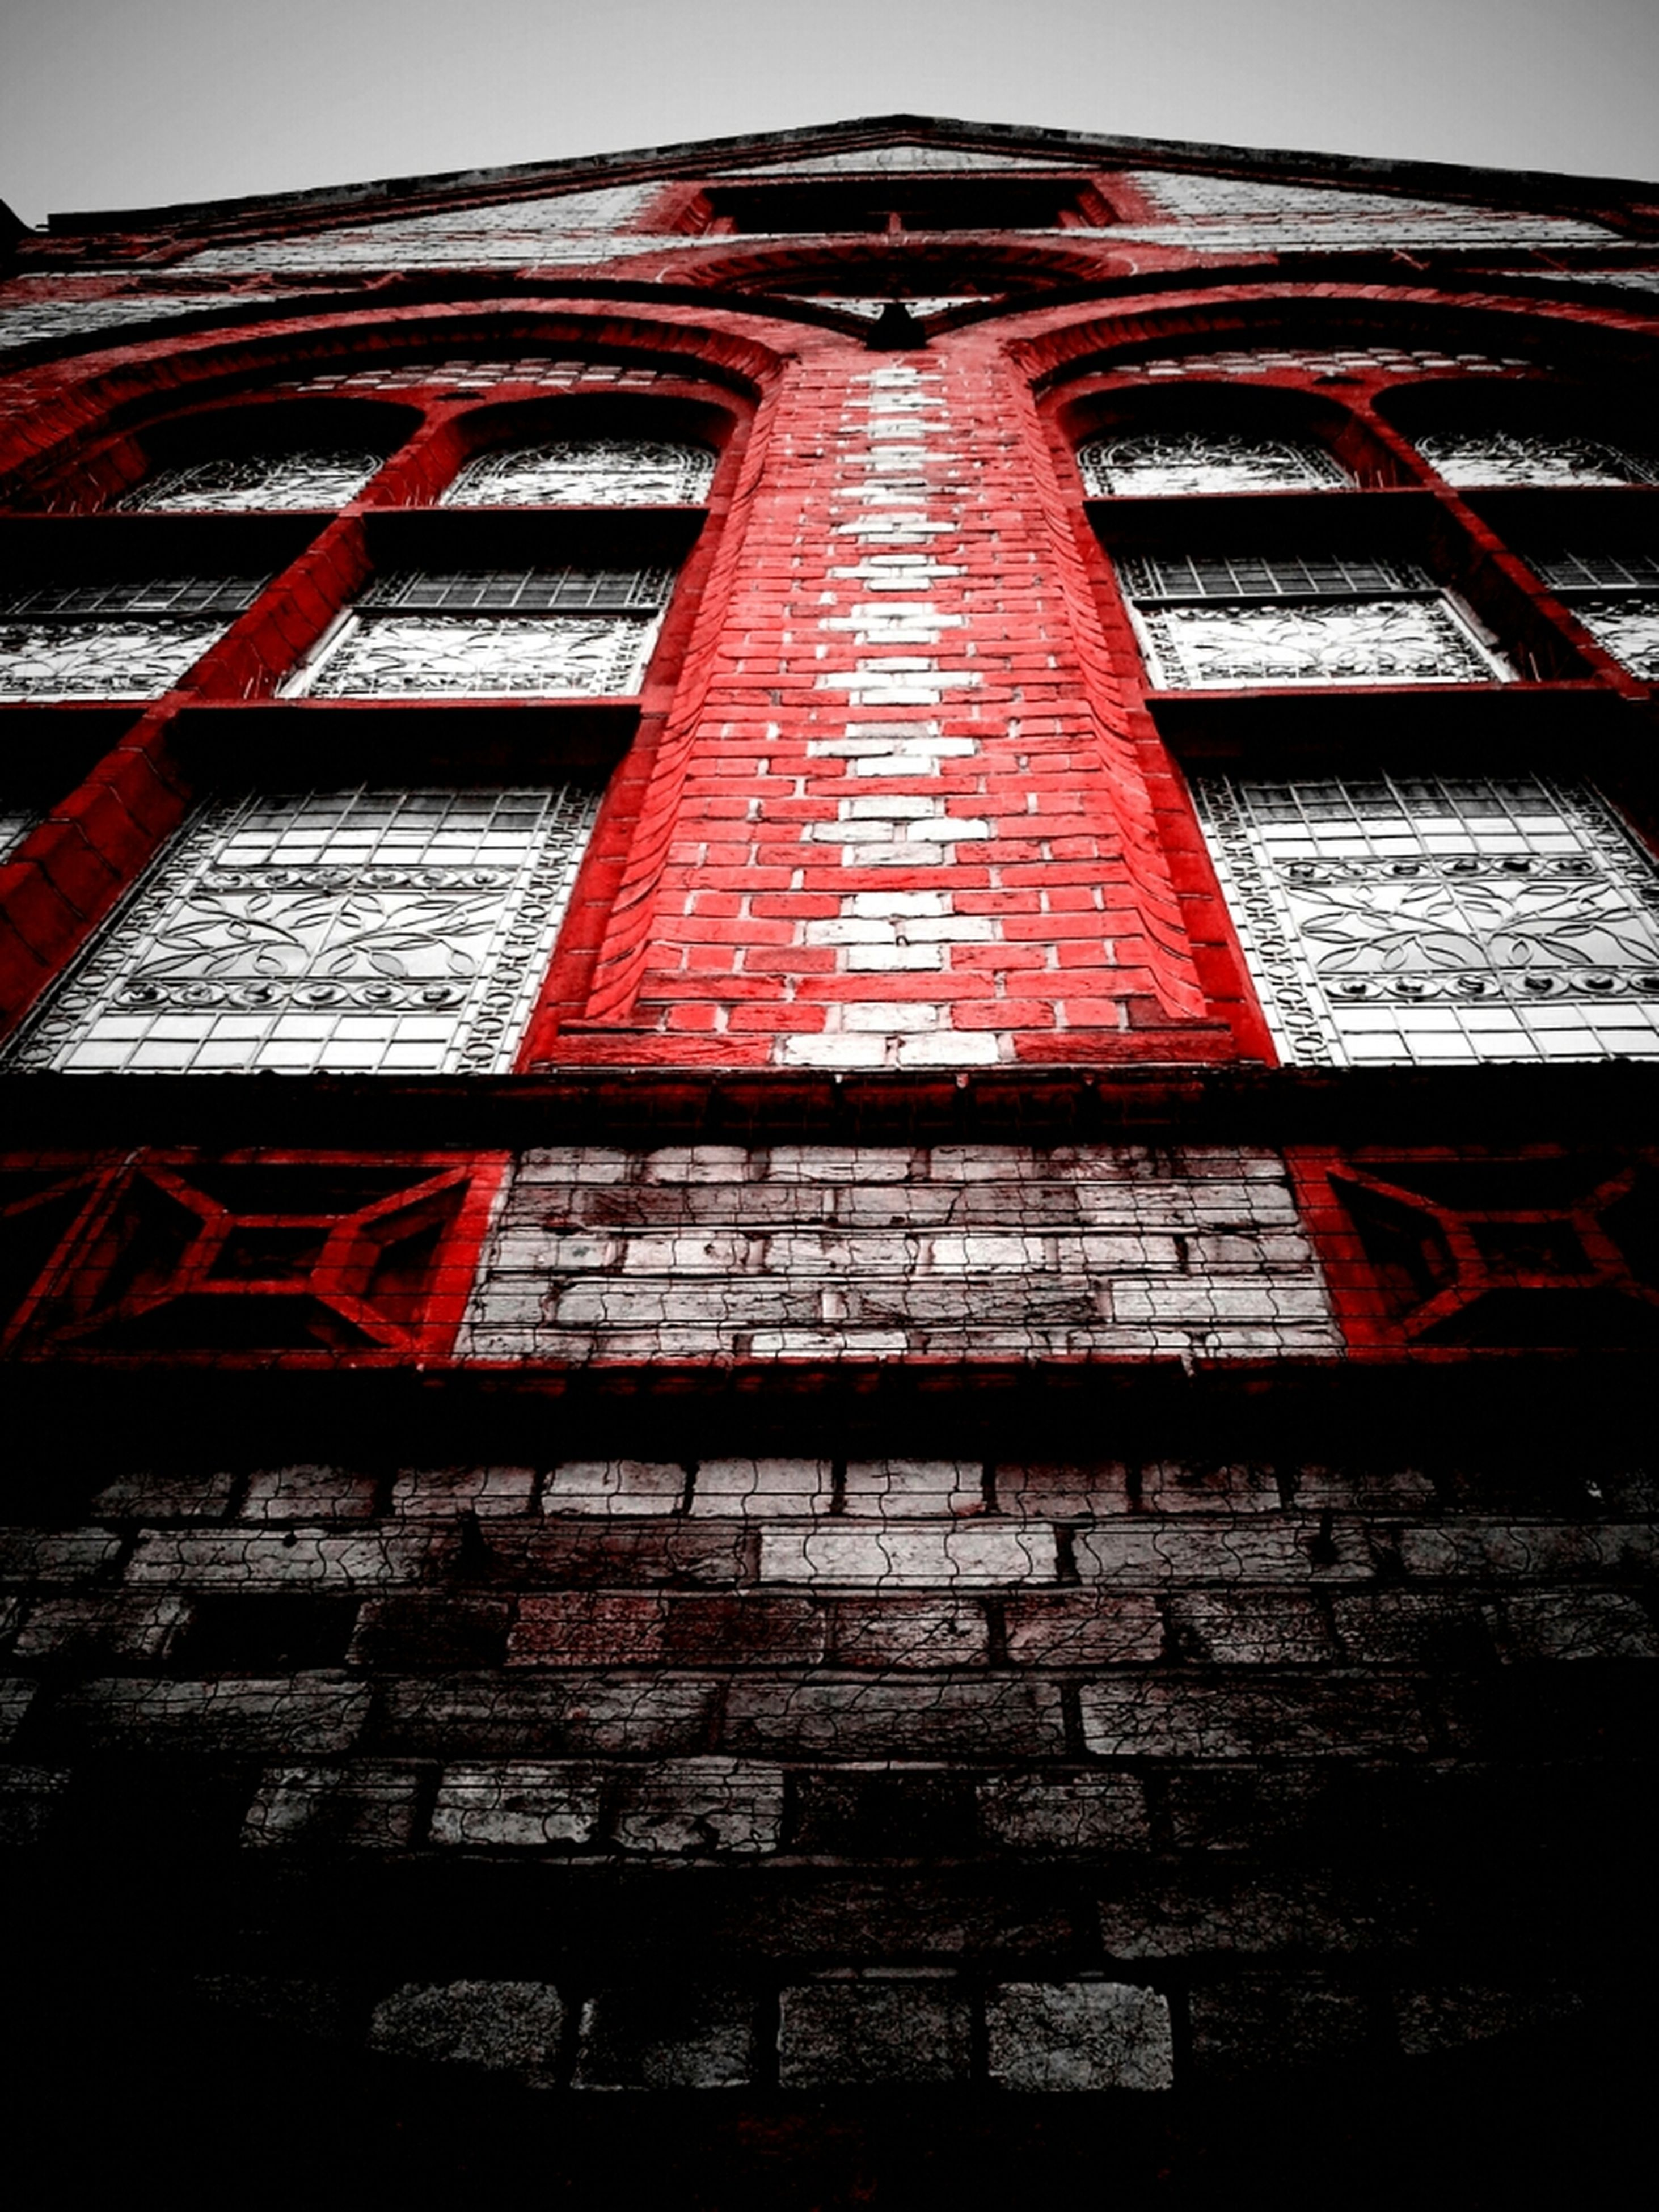 architecture, building exterior, built structure, low angle view, red, window, brick wall, building, clear sky, exterior, day, outdoors, residential structure, house, no people, sky, old, residential building, brick, facade